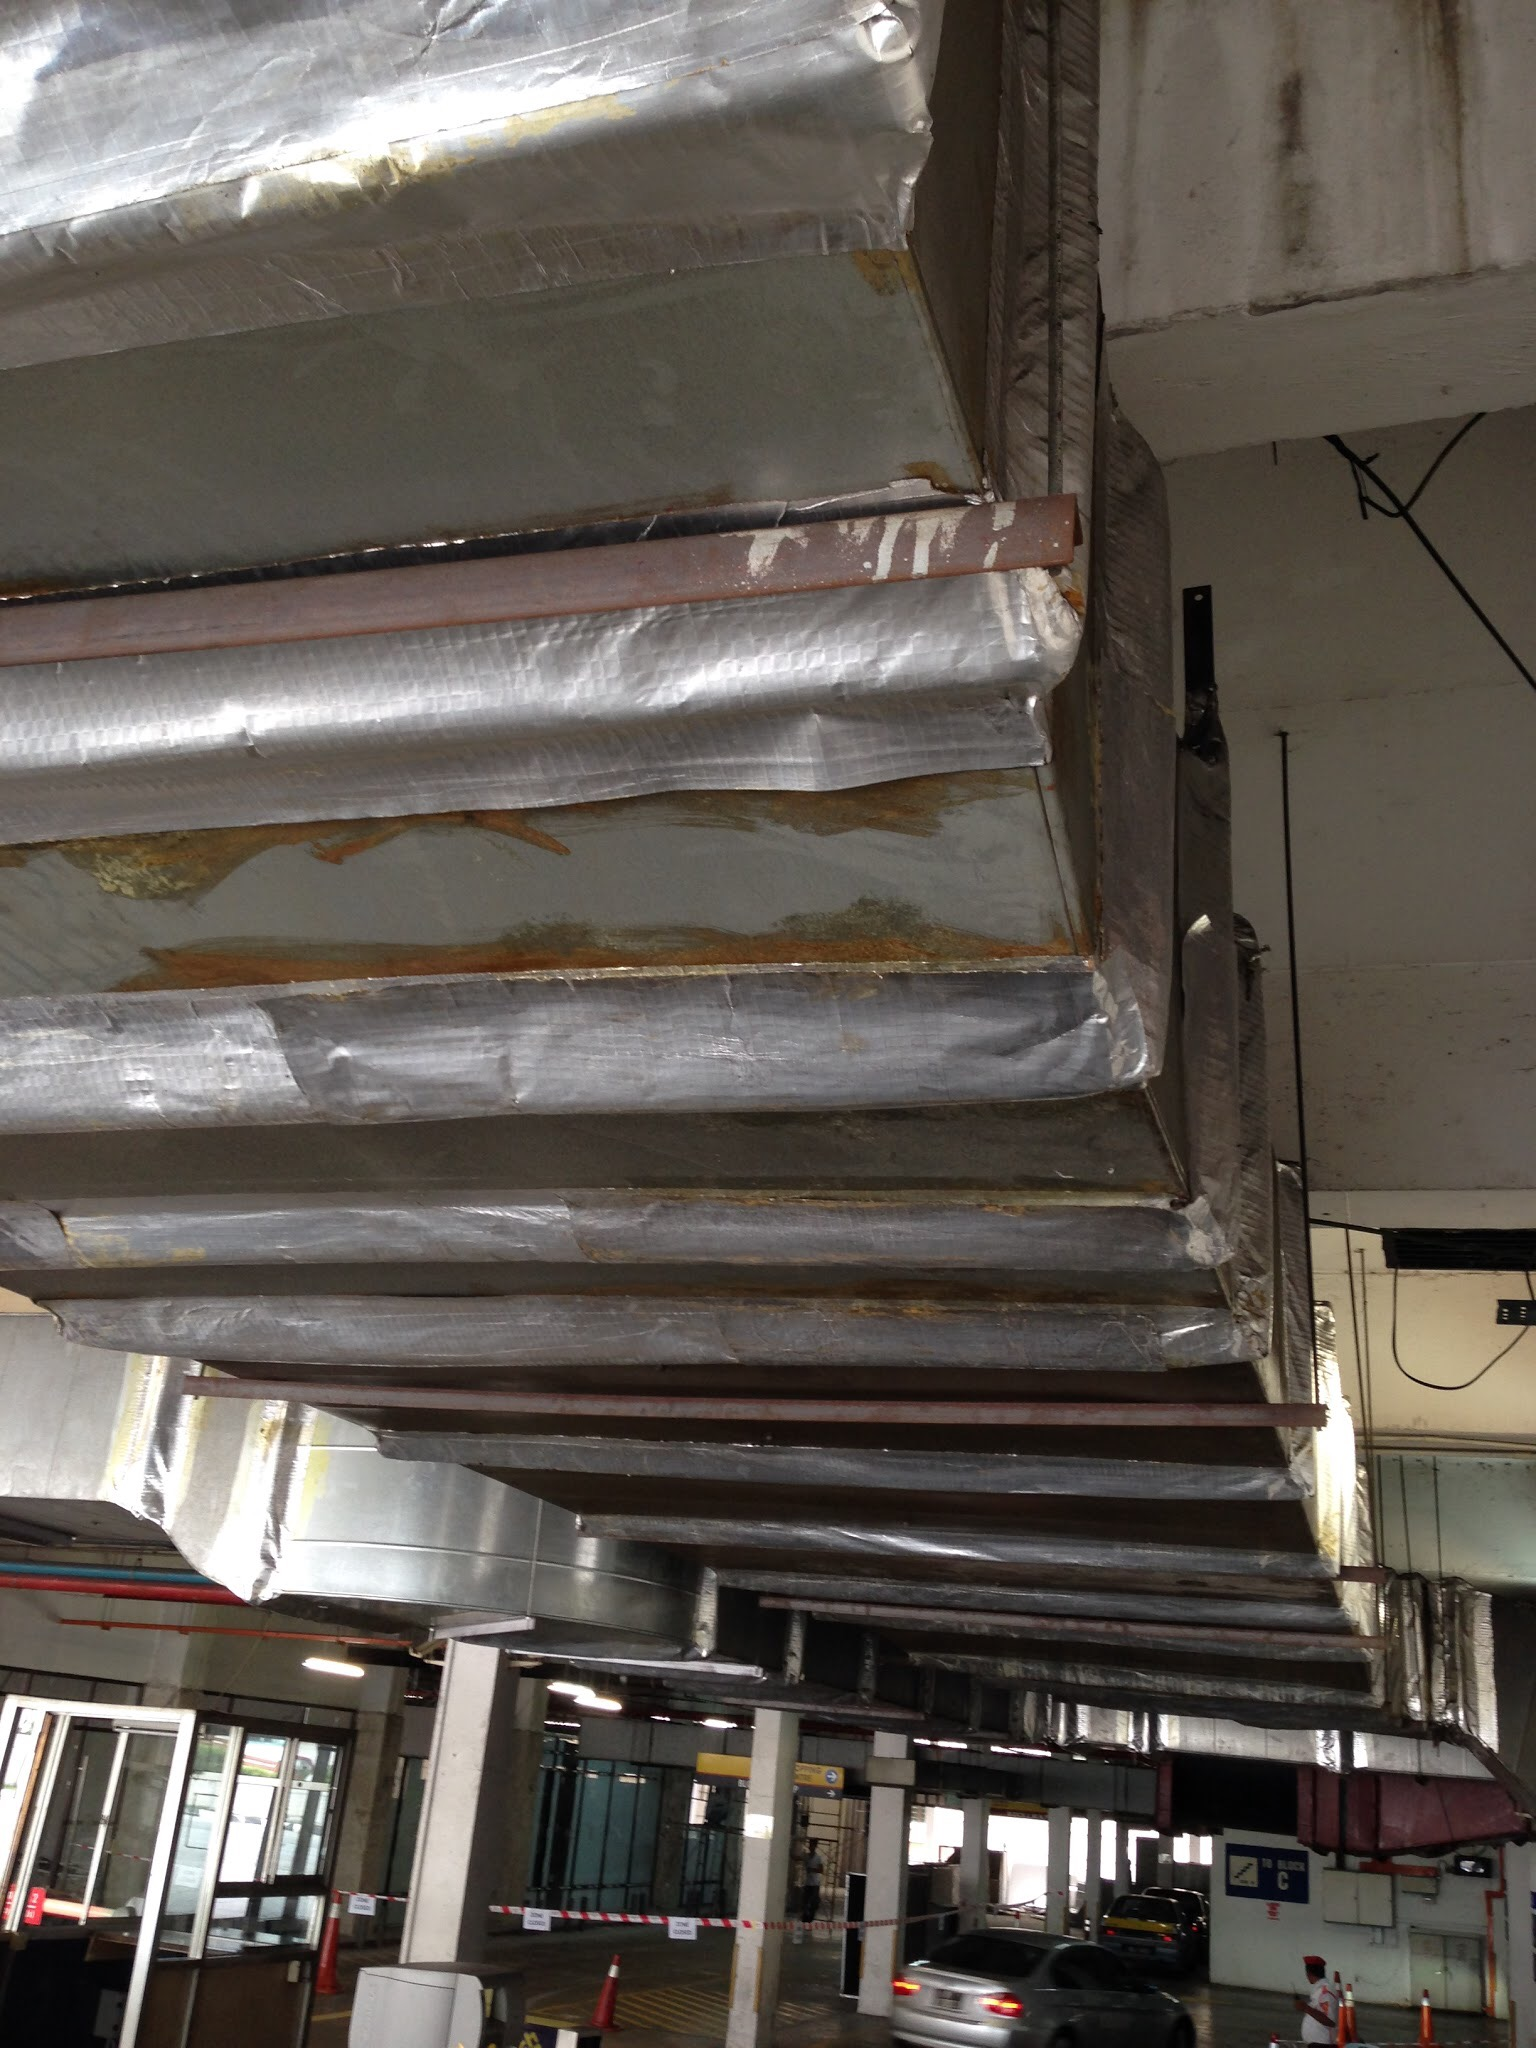 leaky kitchen exhaust duct